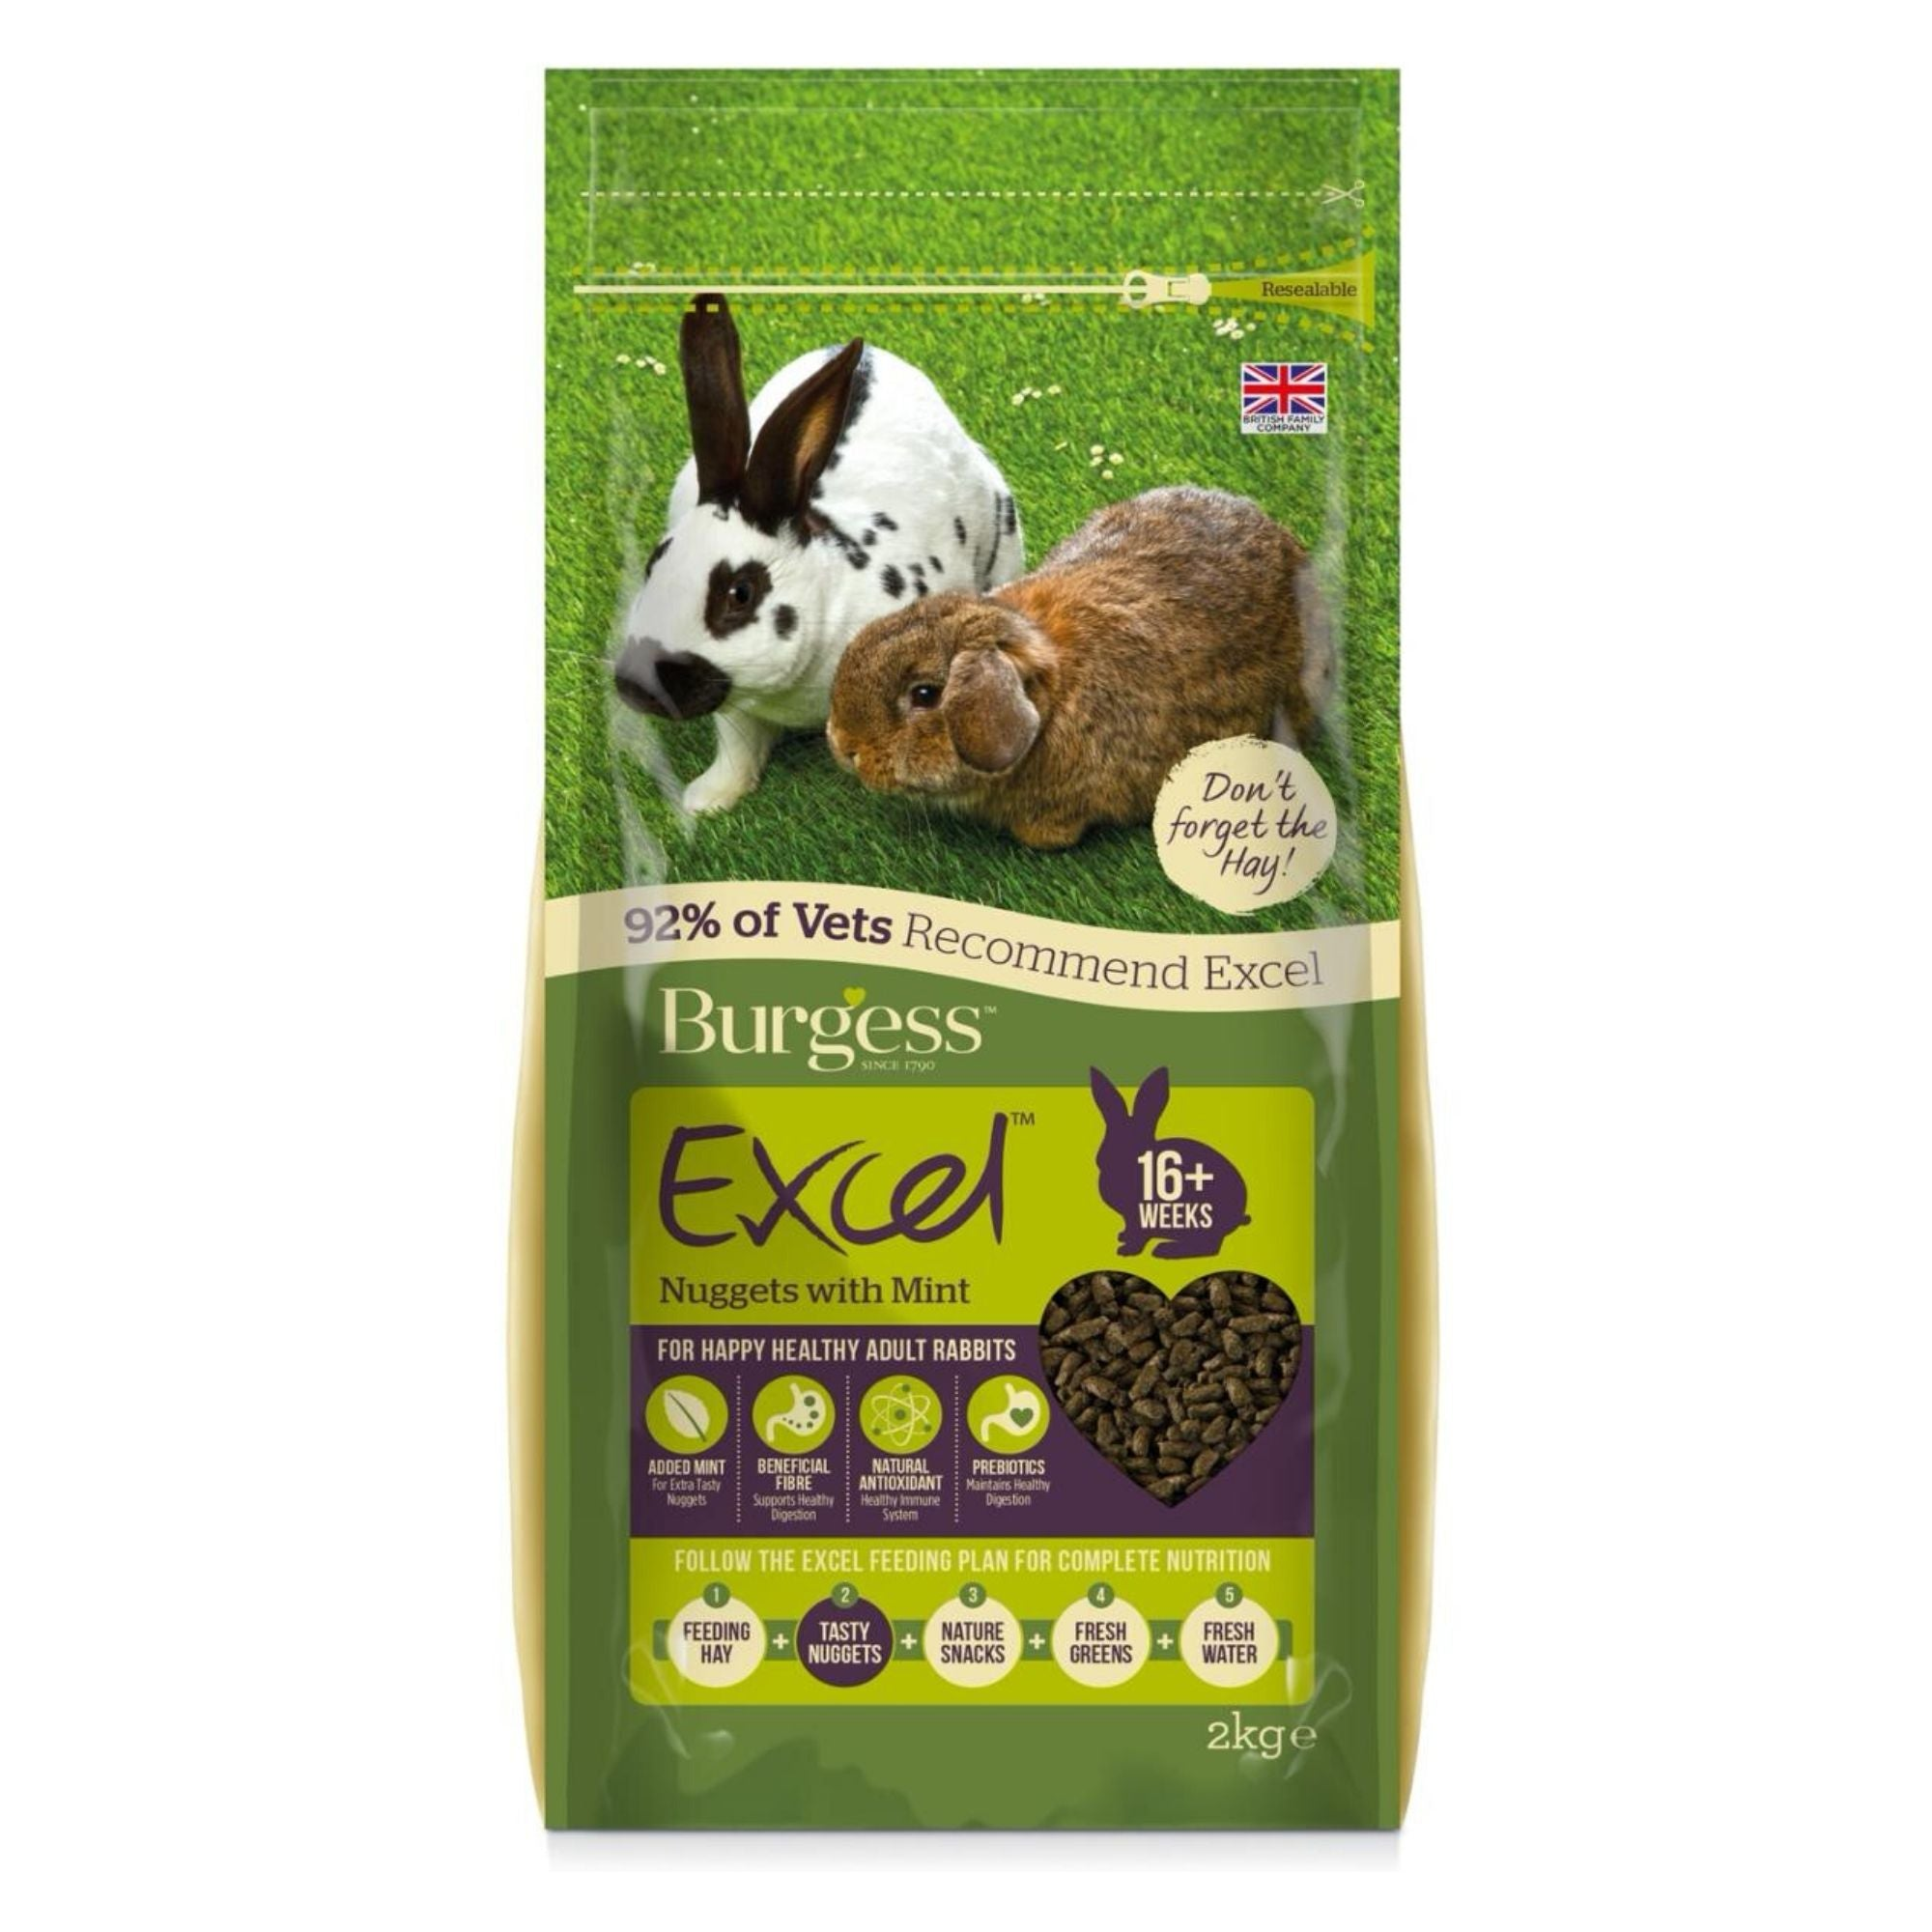 Burgess Excel Adult Rabbit Food with Mint (Pellets) | Barks & Bunnies